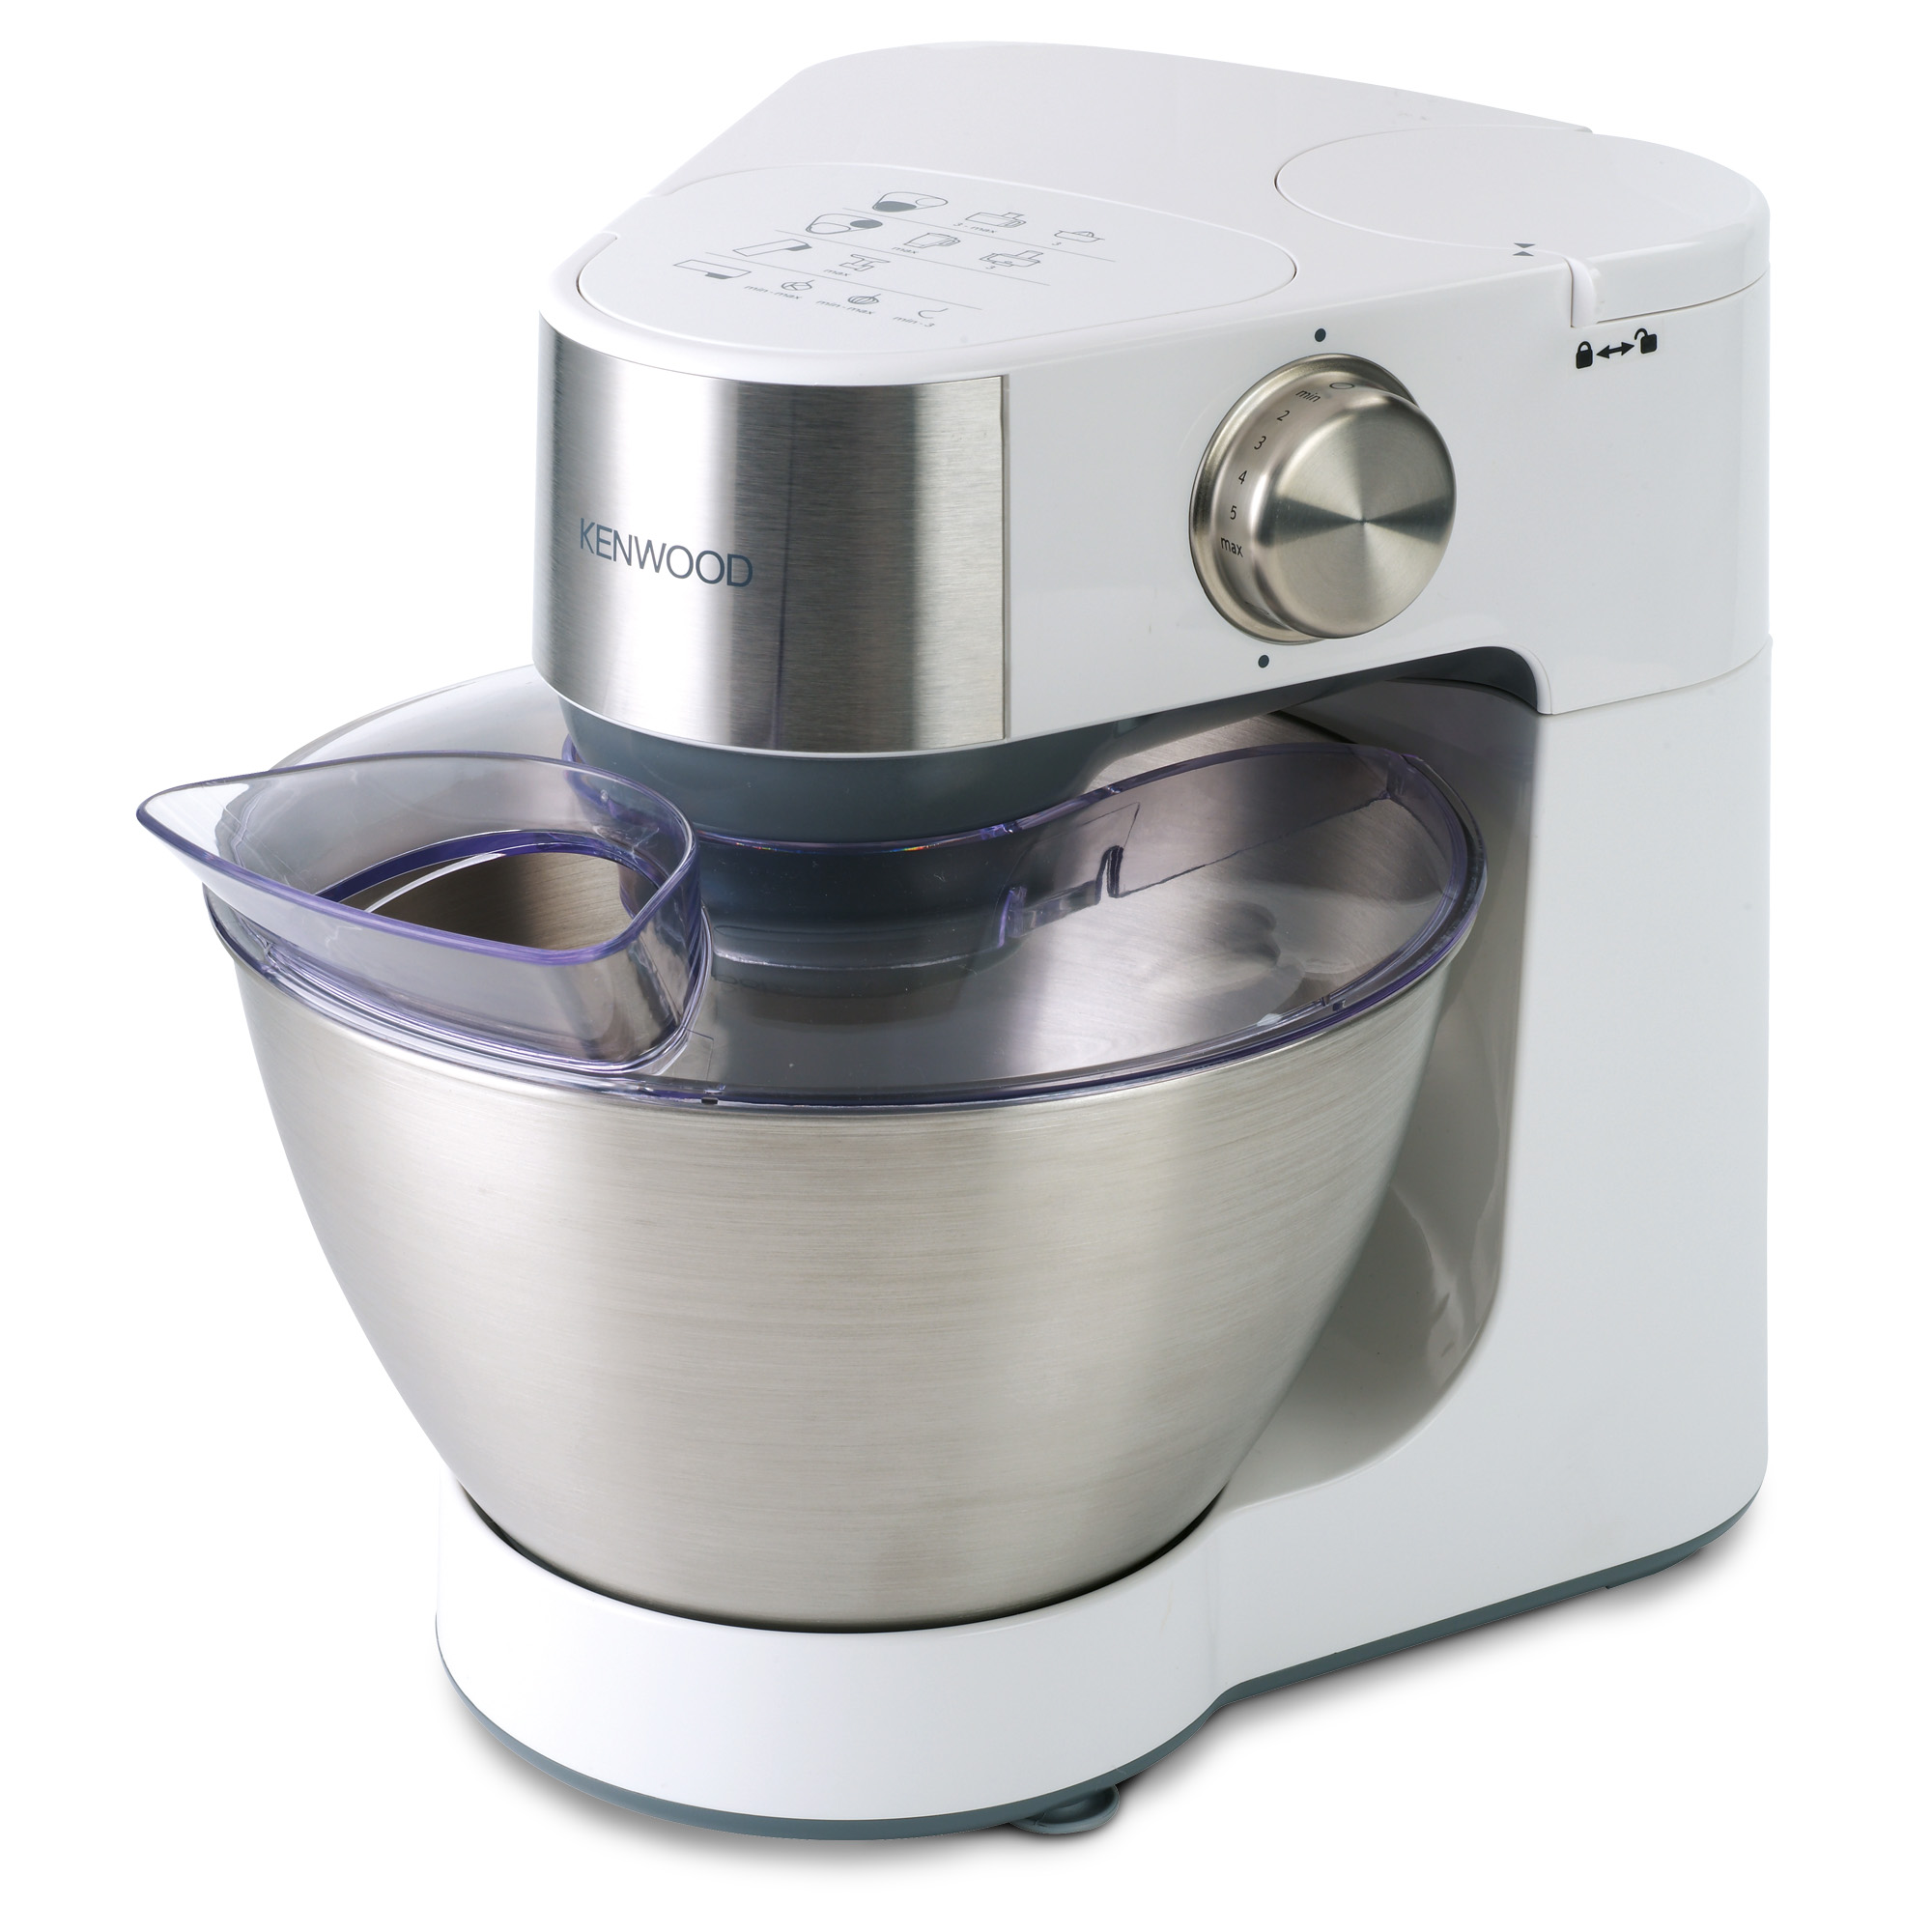 Recensione Kenwood KM242 Prospero Kitchen Machine – Opinioni Robot ...